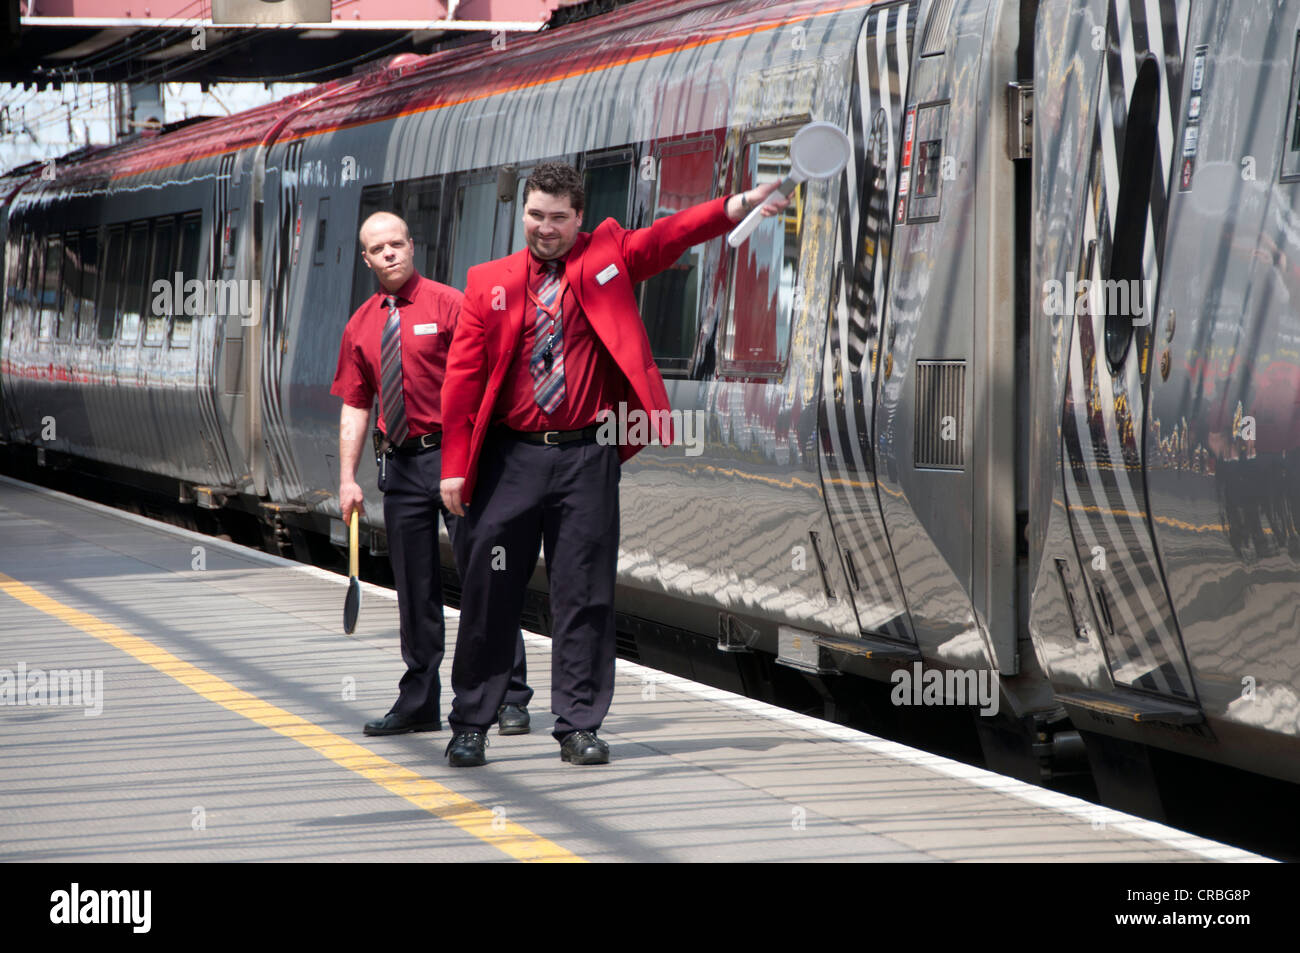 Crewe station. Virgin staff on the platform ready for the train to leave - Stock Image